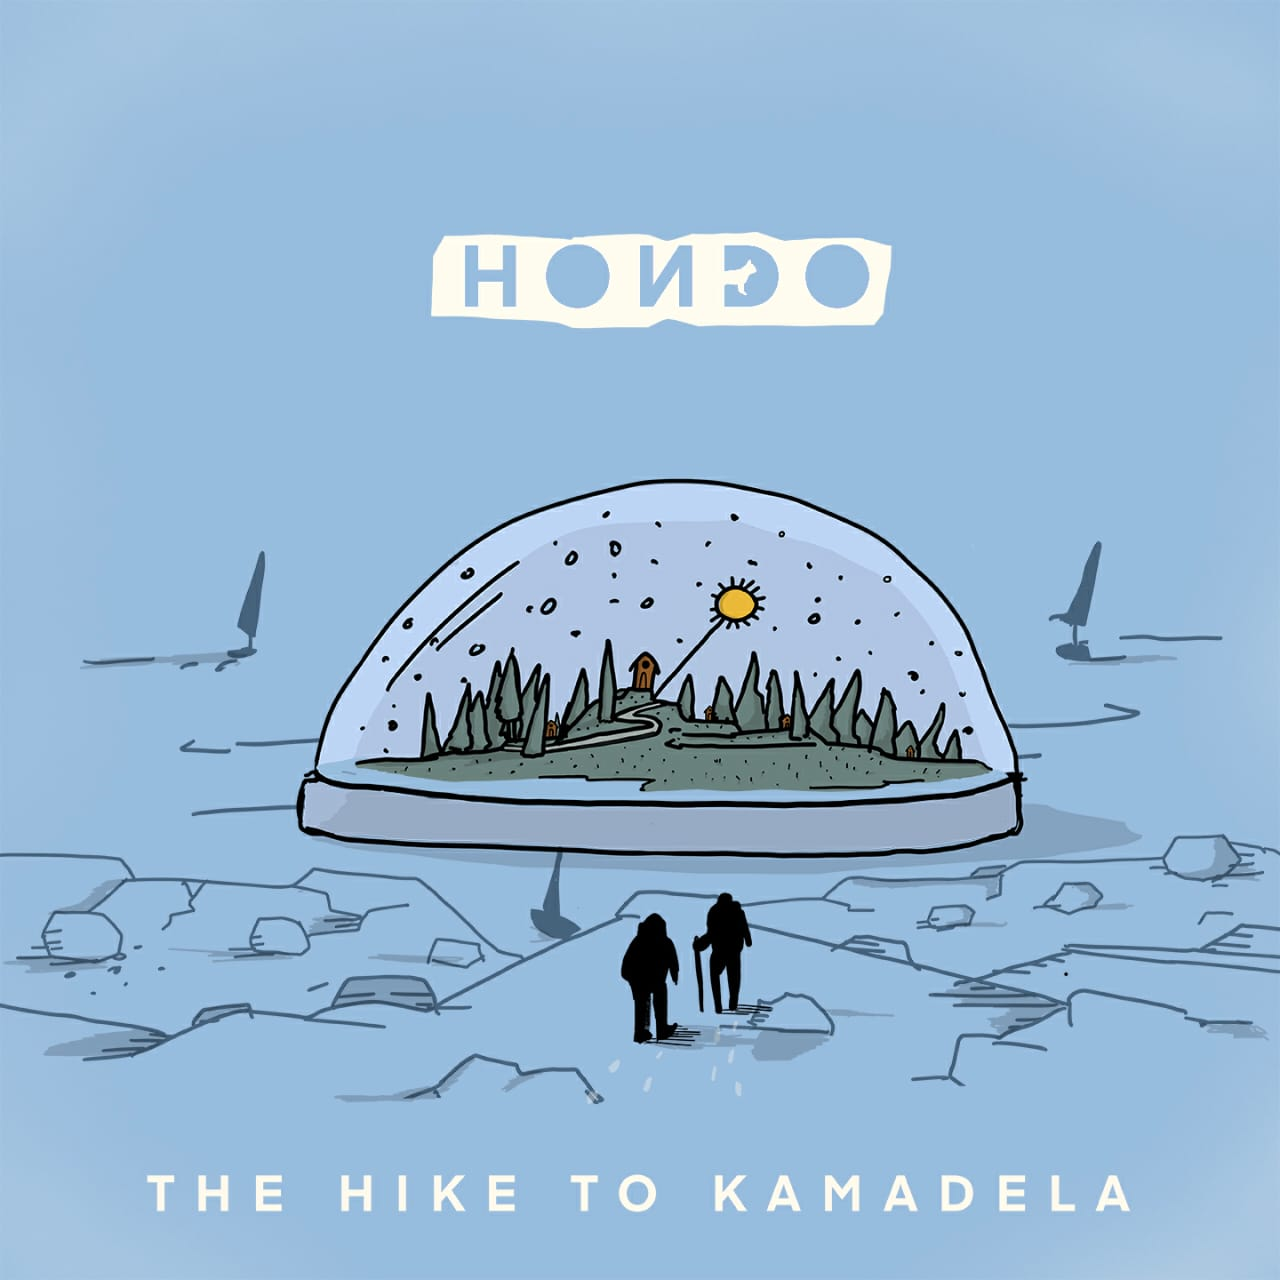 Hondo Rilis Album Debut The Hike to Kamadela